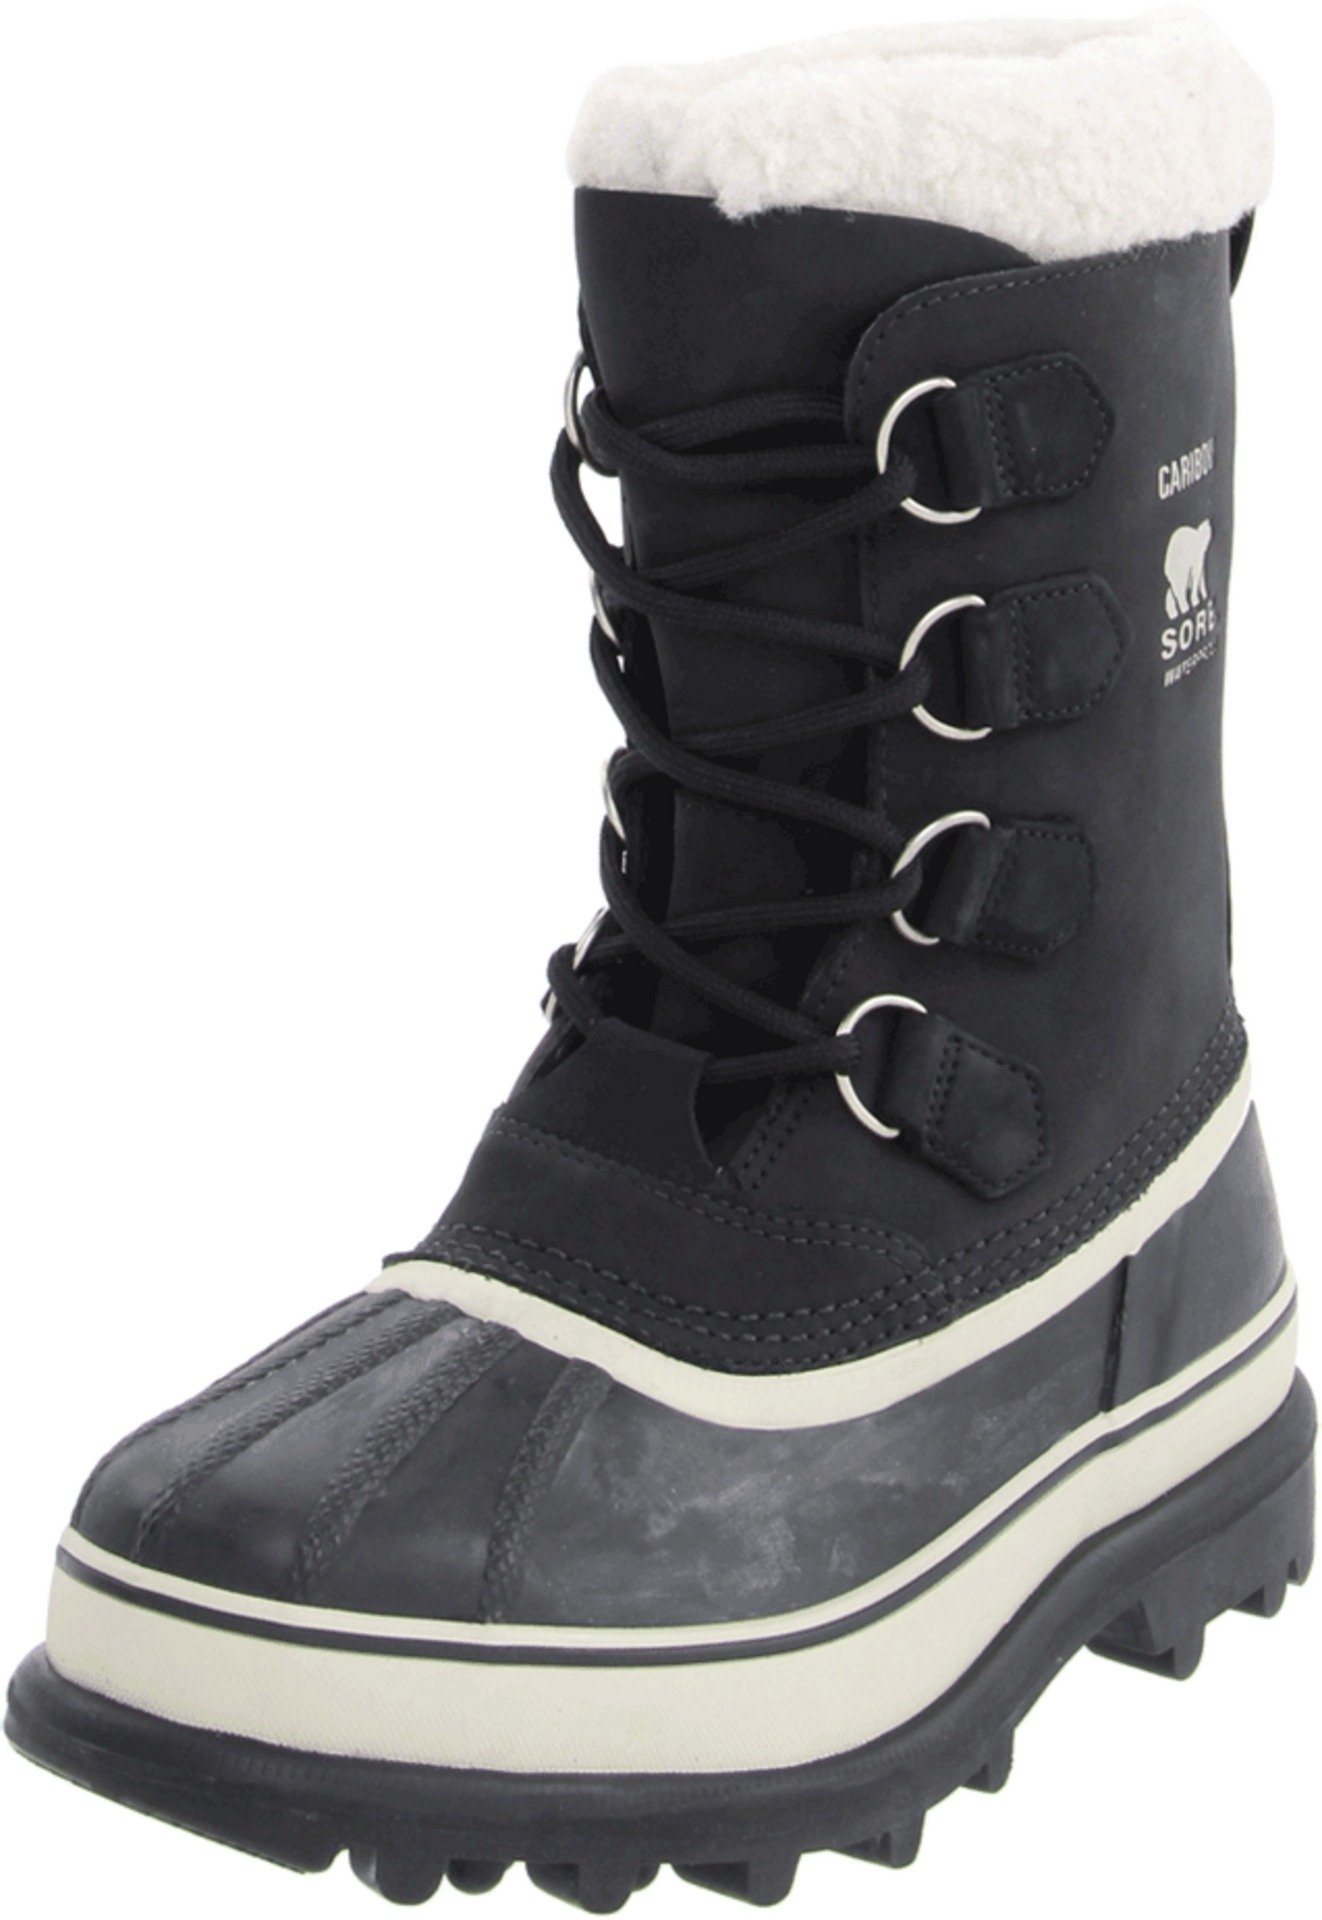 Sorel Women's Caribou NL1005 Boot,Black/Stone,8 M